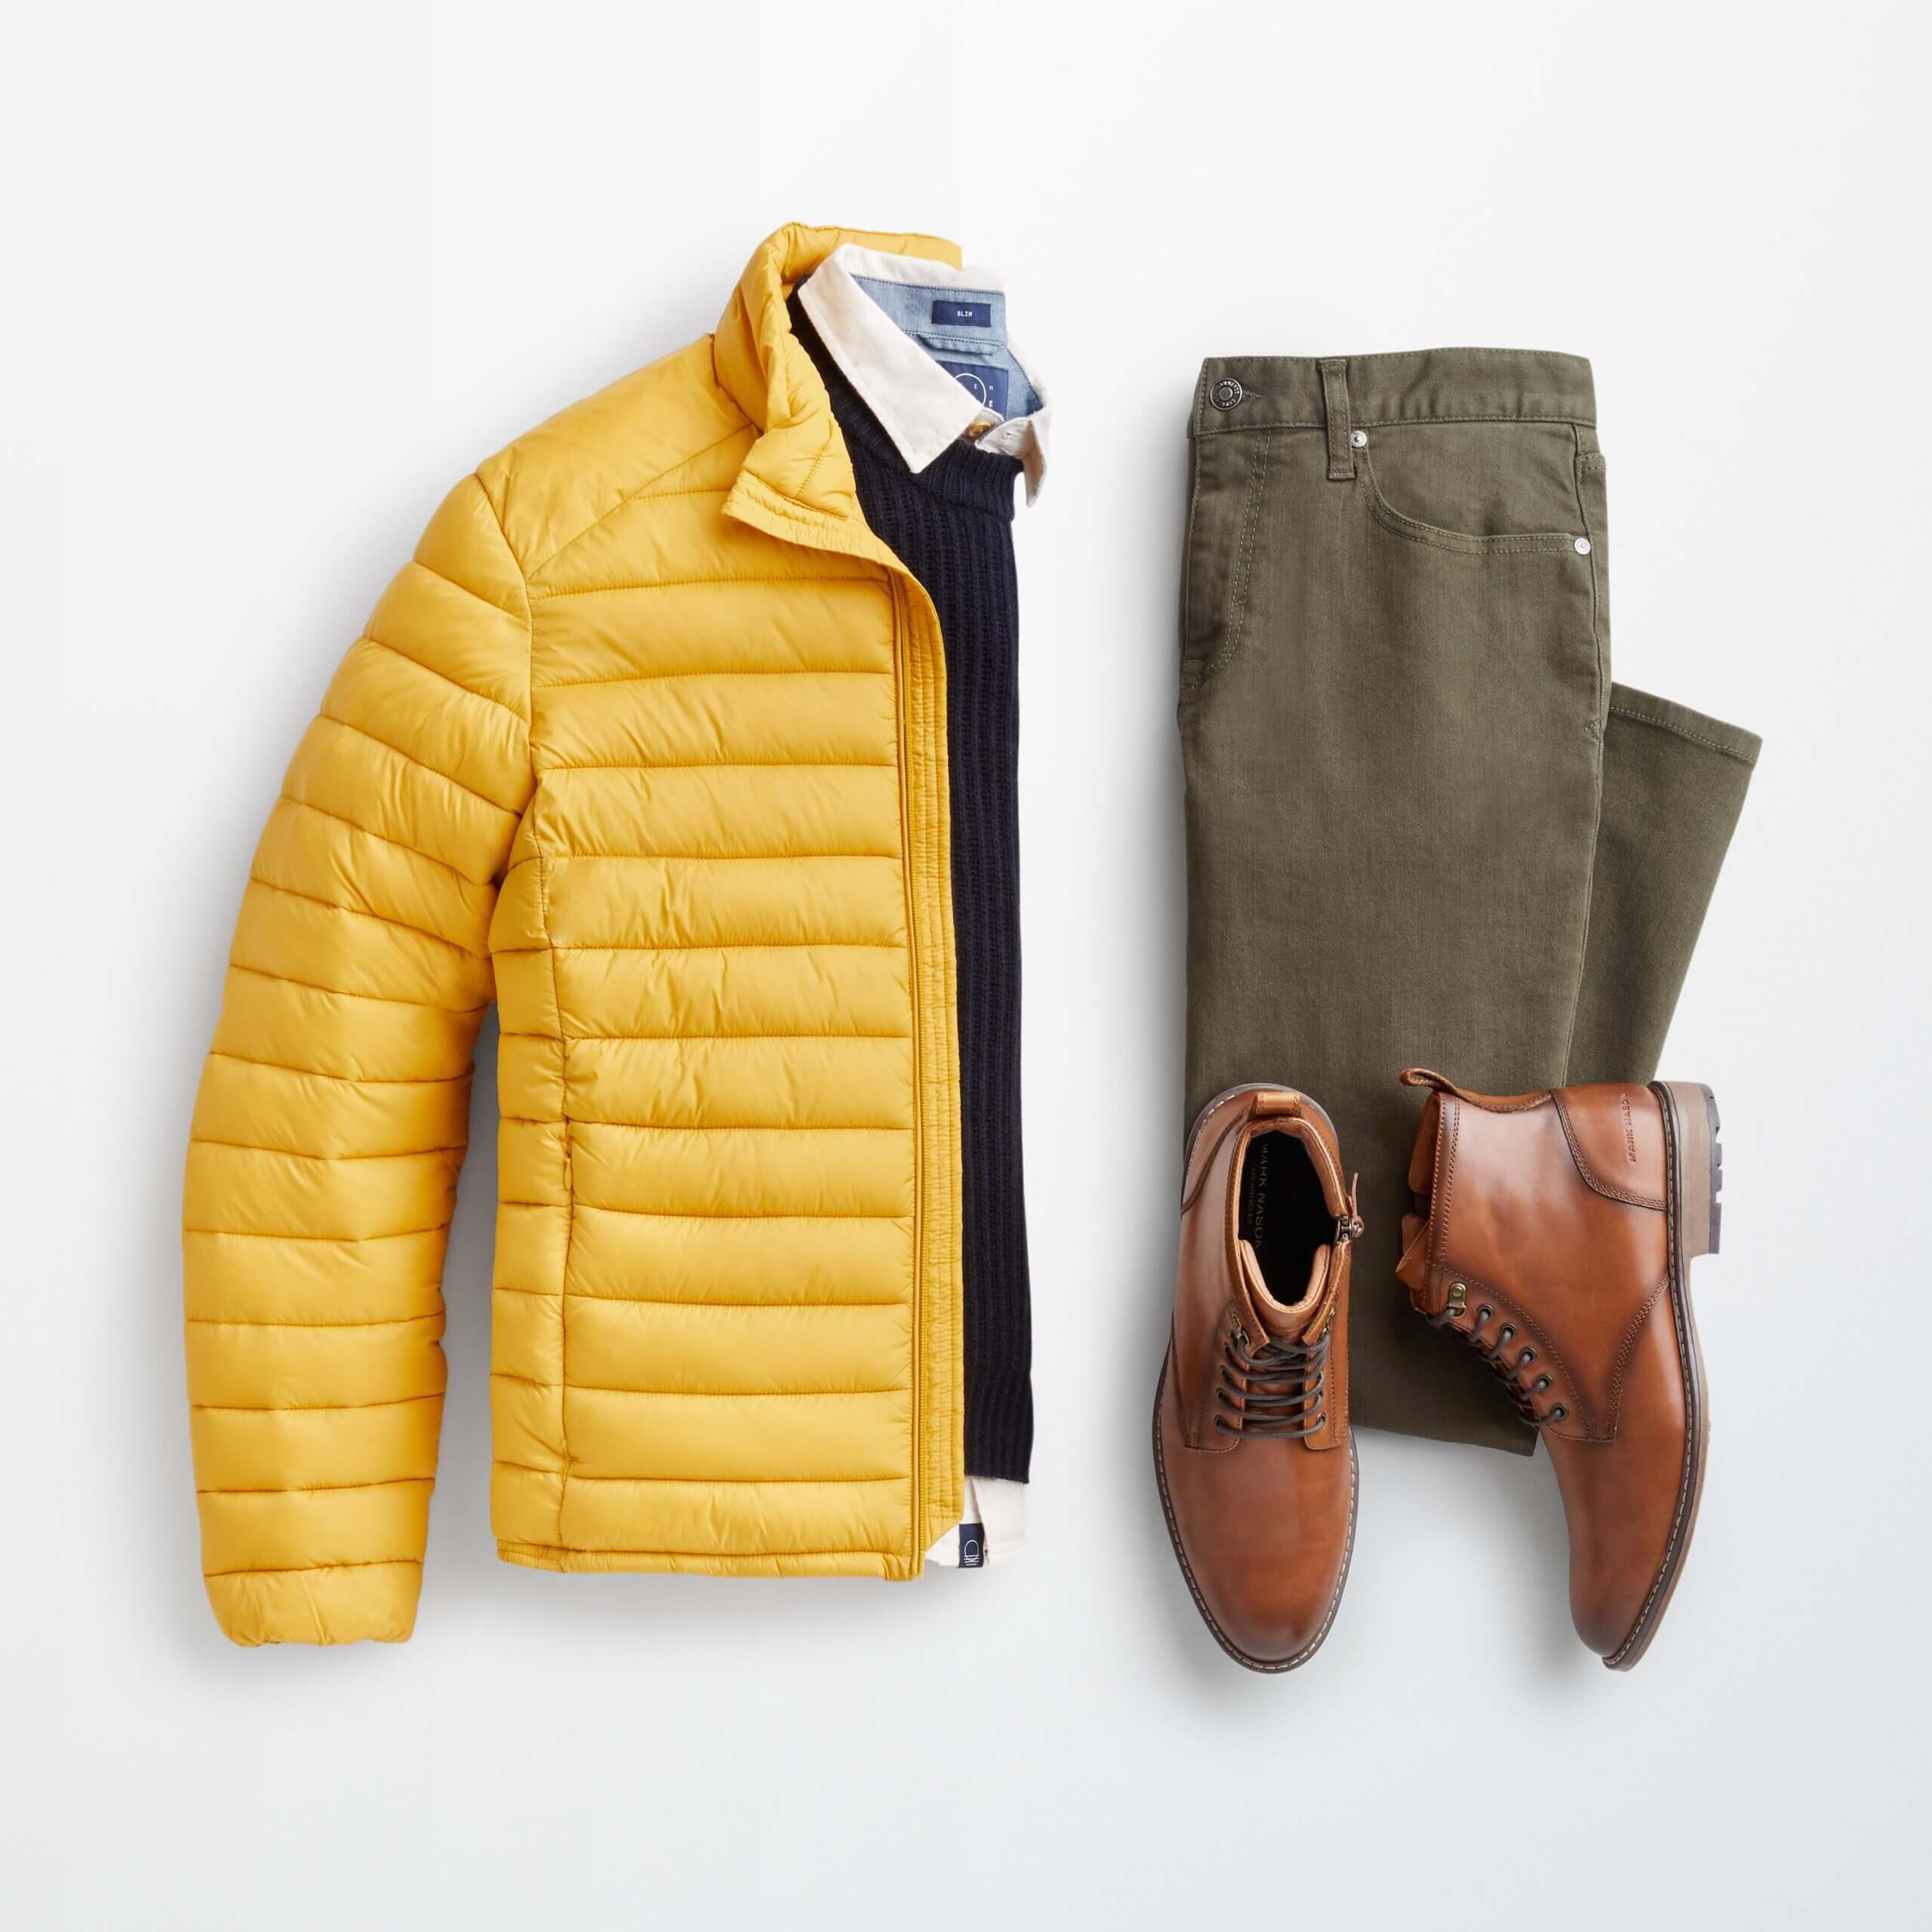 Stitch Fix men's outfit laydown featuring yellow puffer jacket over blue pullover and collared shirt, olive jeans and brown leather boots.